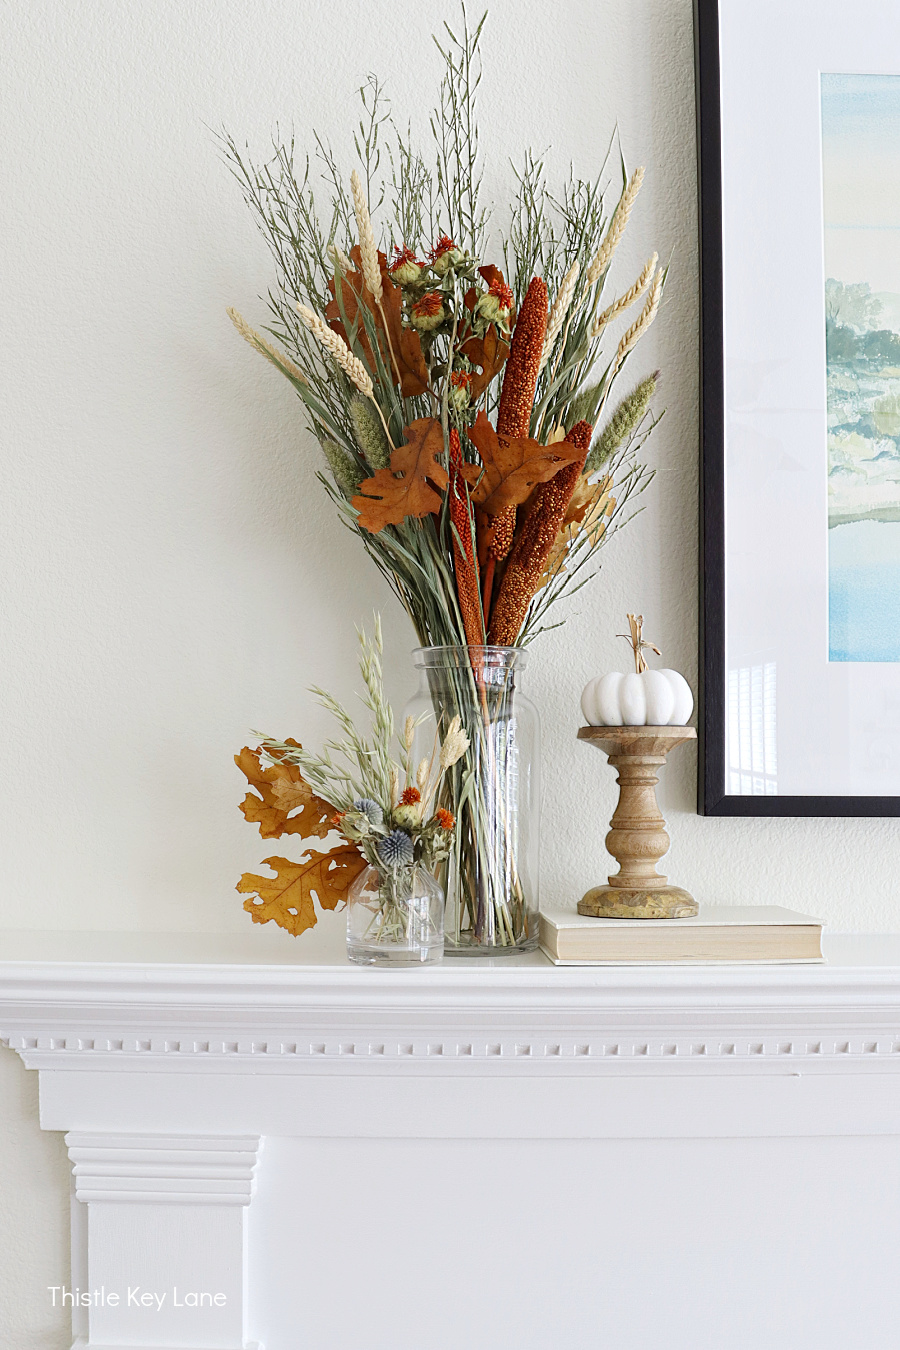 Dried leaves, flowers and grasses in a glass vase. Decorating A Fall Mantel With Dried Arrangements.